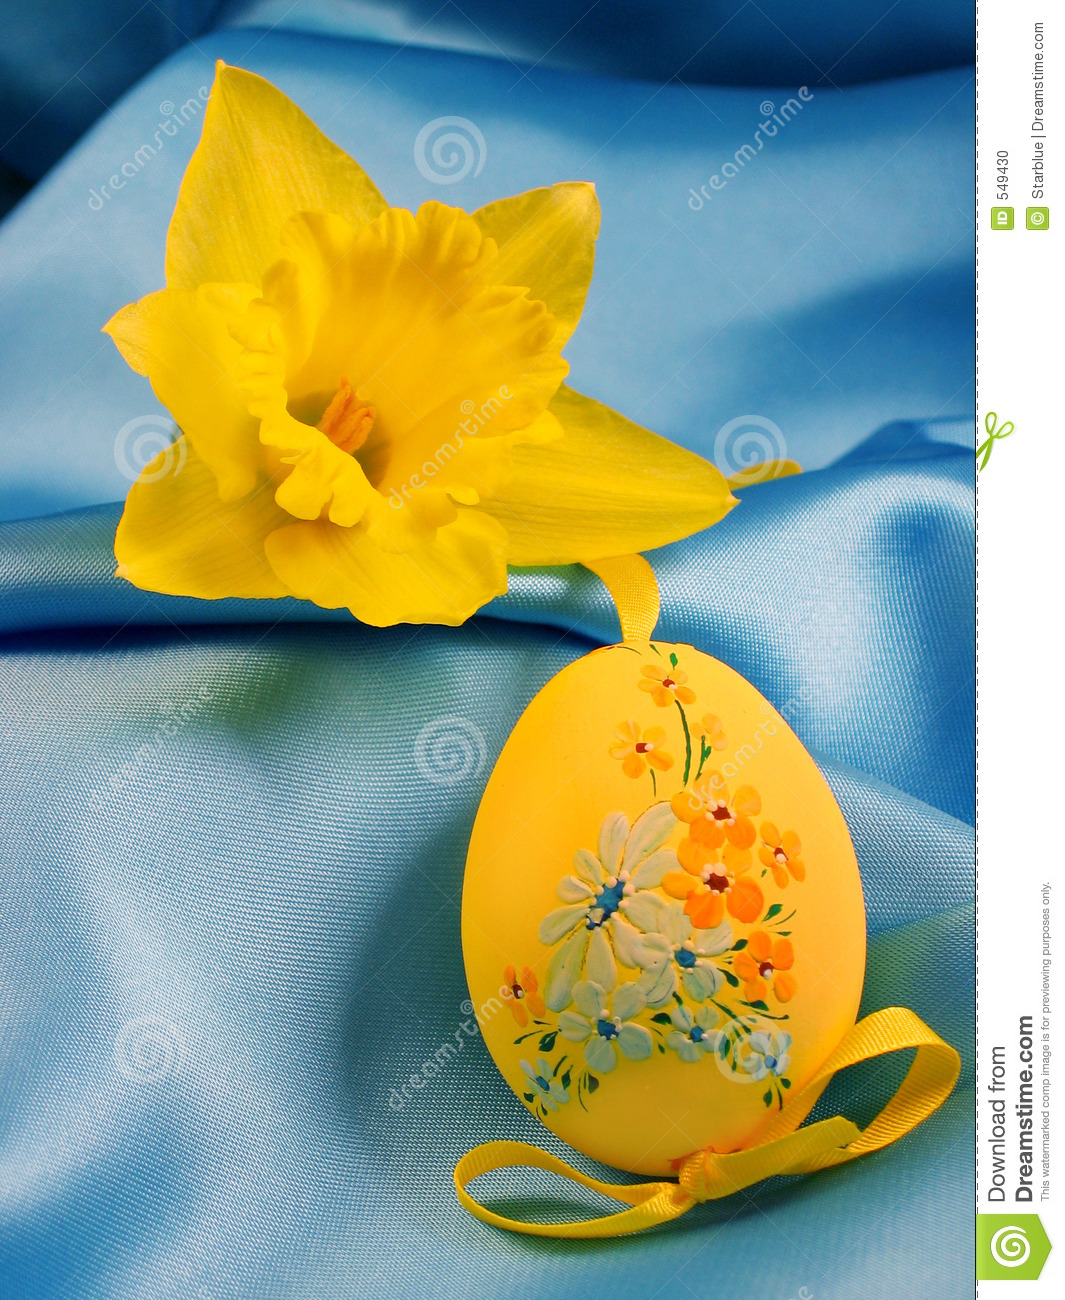 Narcissus and Easter yellow egg